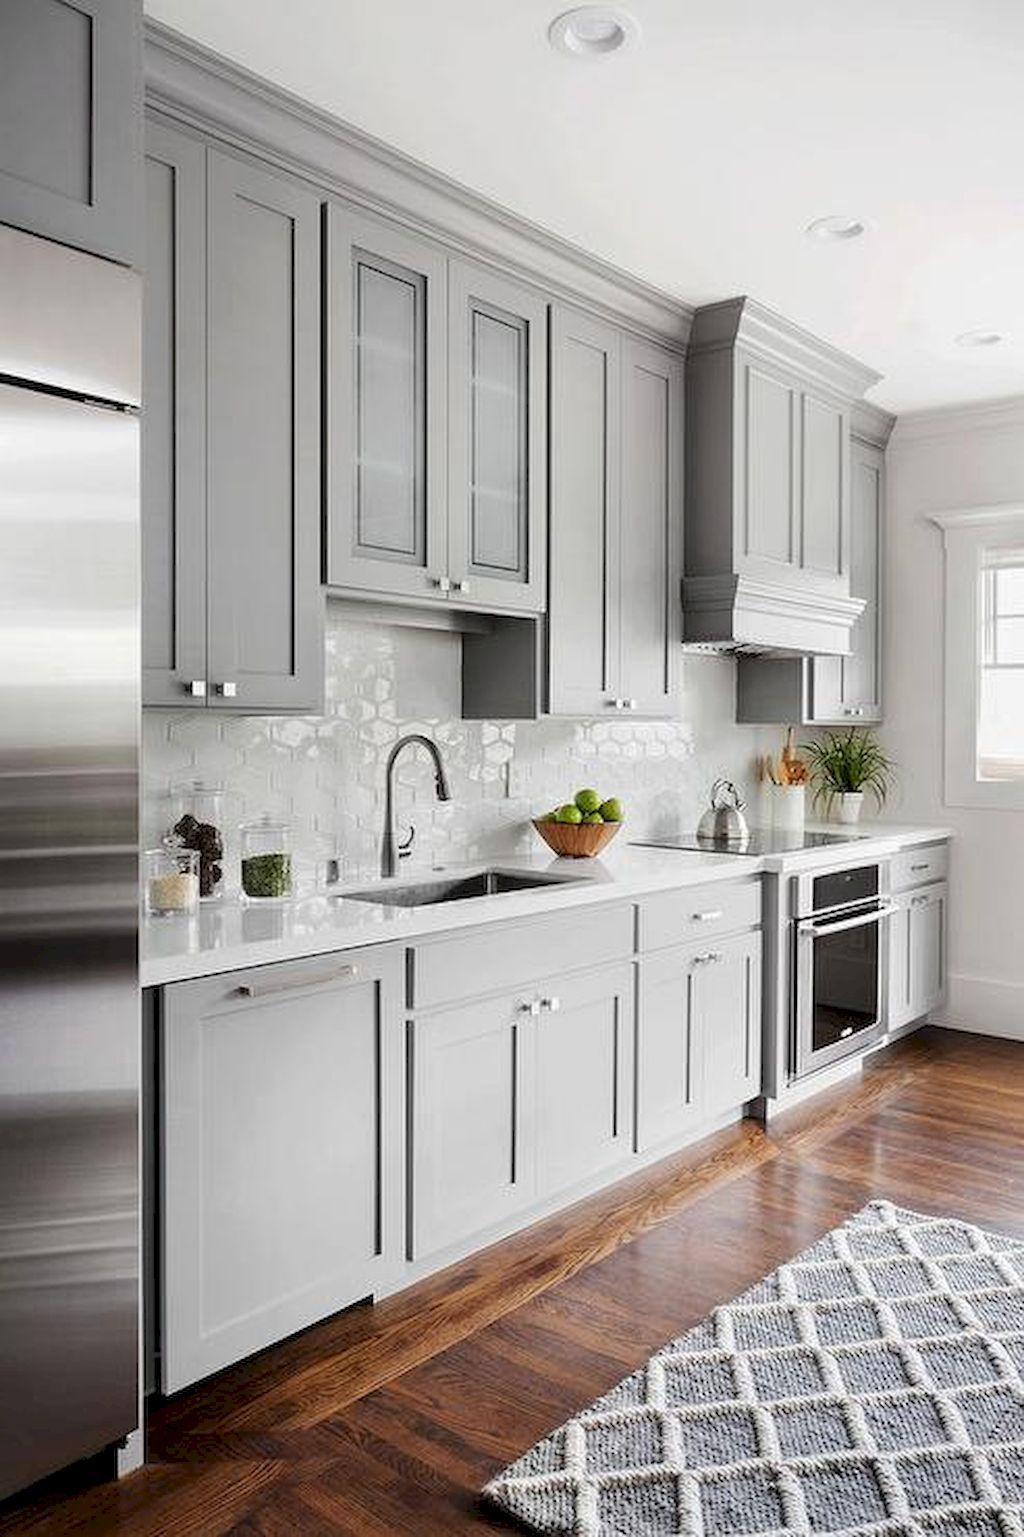 Best Beautiful Gray Kitchen Cabinets Design Ideas 44 Shaker 640 x 480